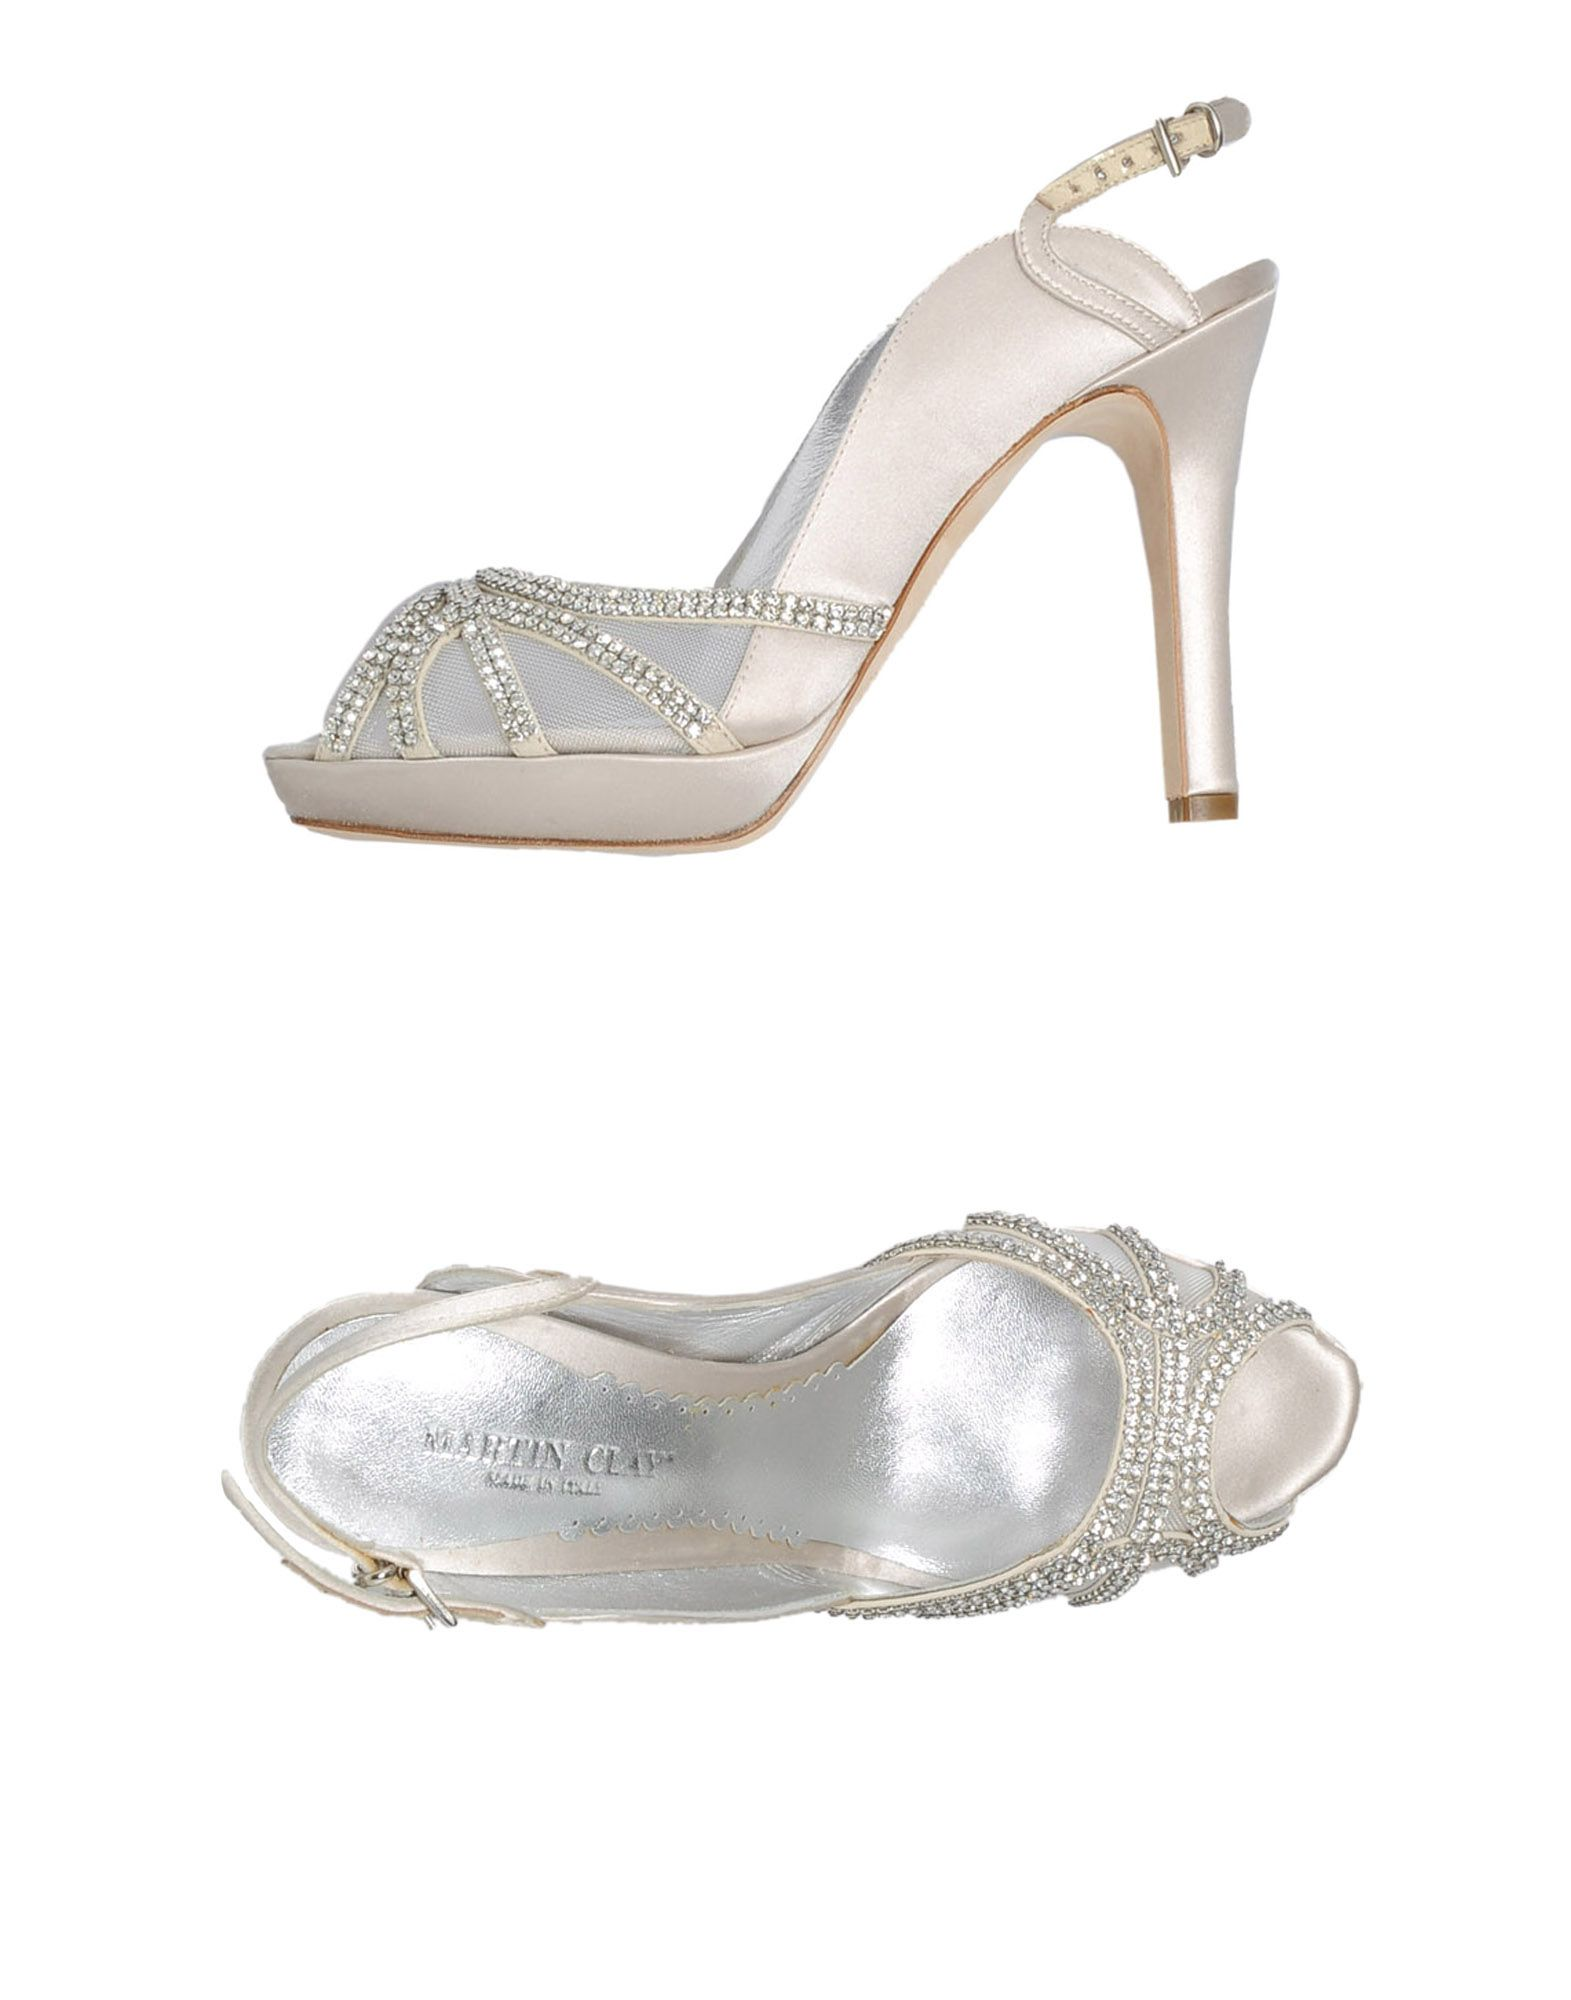 These Pretty Slings Would Be A Perfect Bridal Or Bridesmaid Shoe